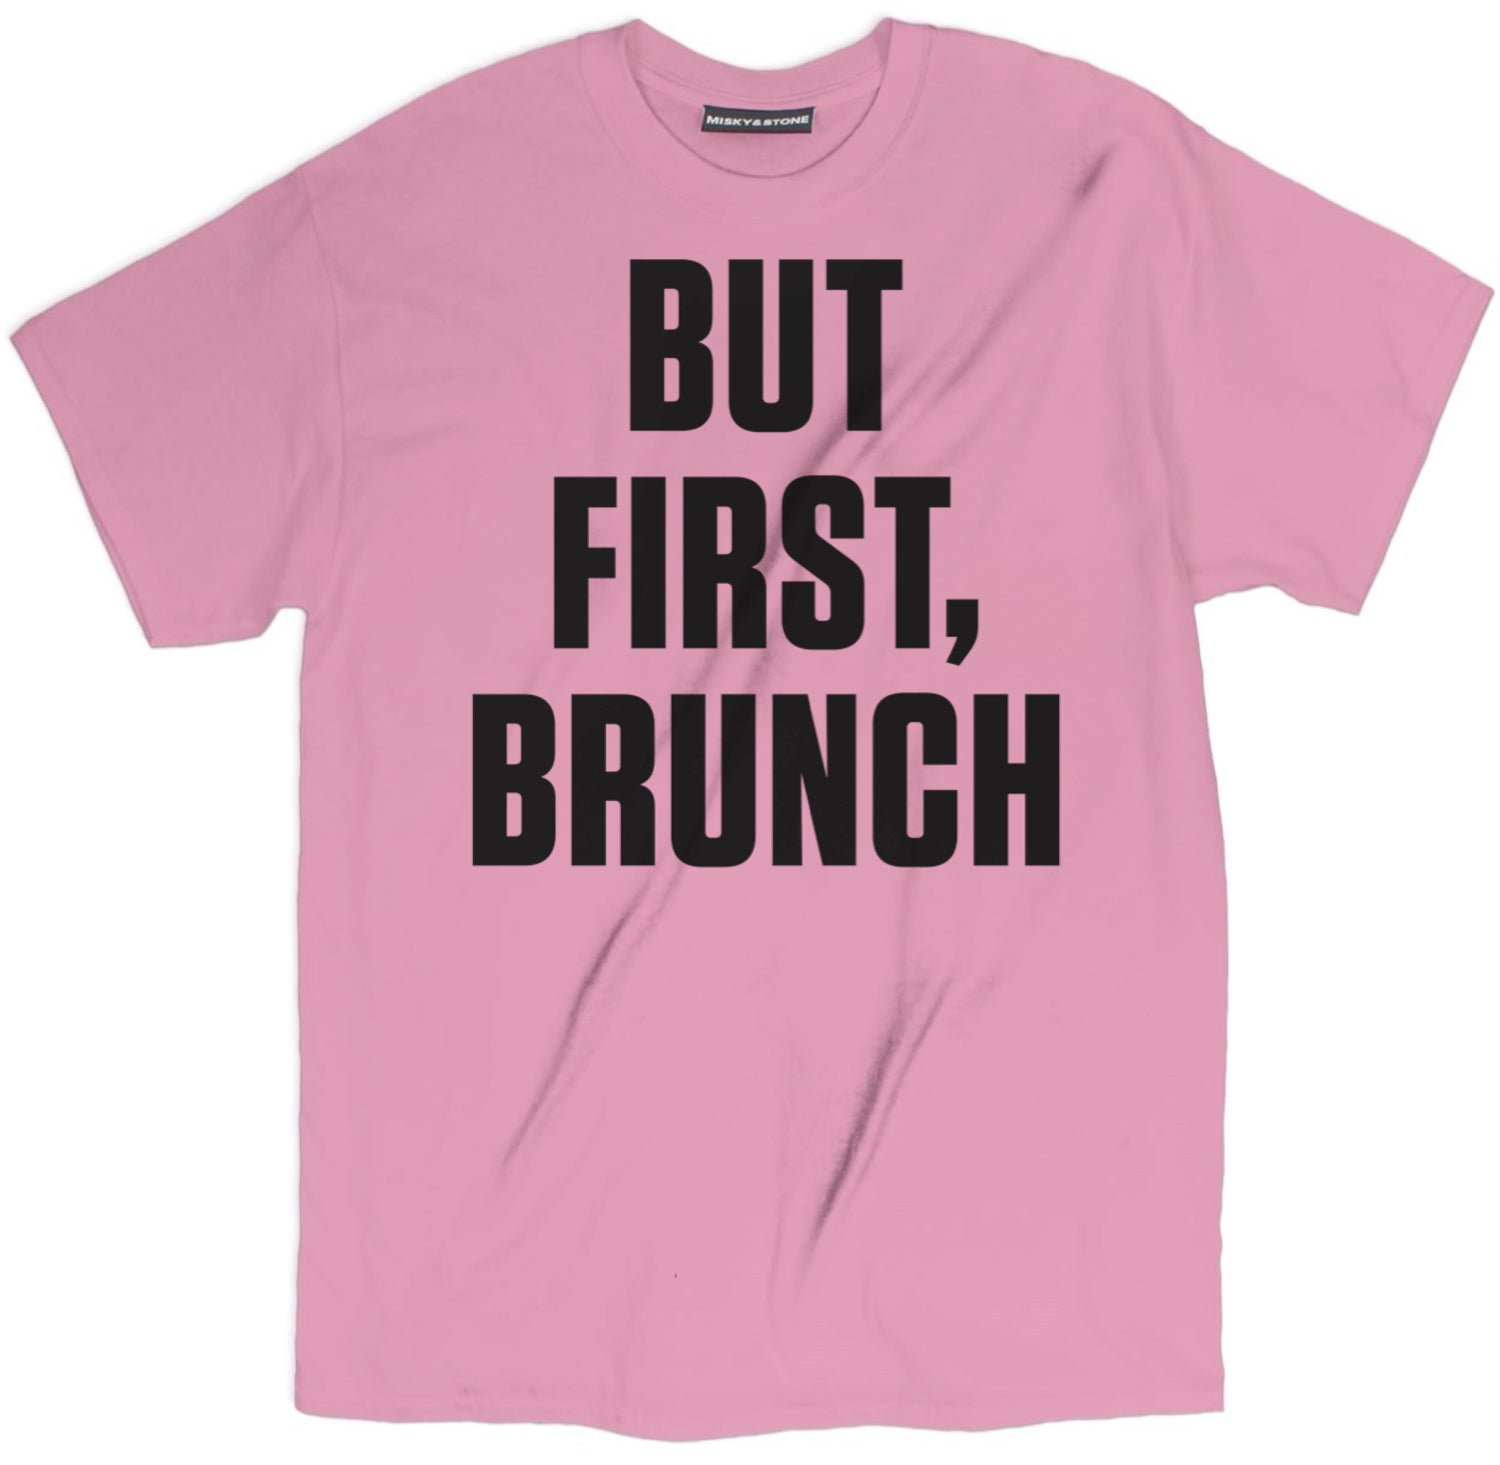 brunch shirts, brunch t shirt, brunch so hard shirt, brunch squad shirt, brunch tees, buy me brunch shirt, brunch so hard, funny brunch shirts